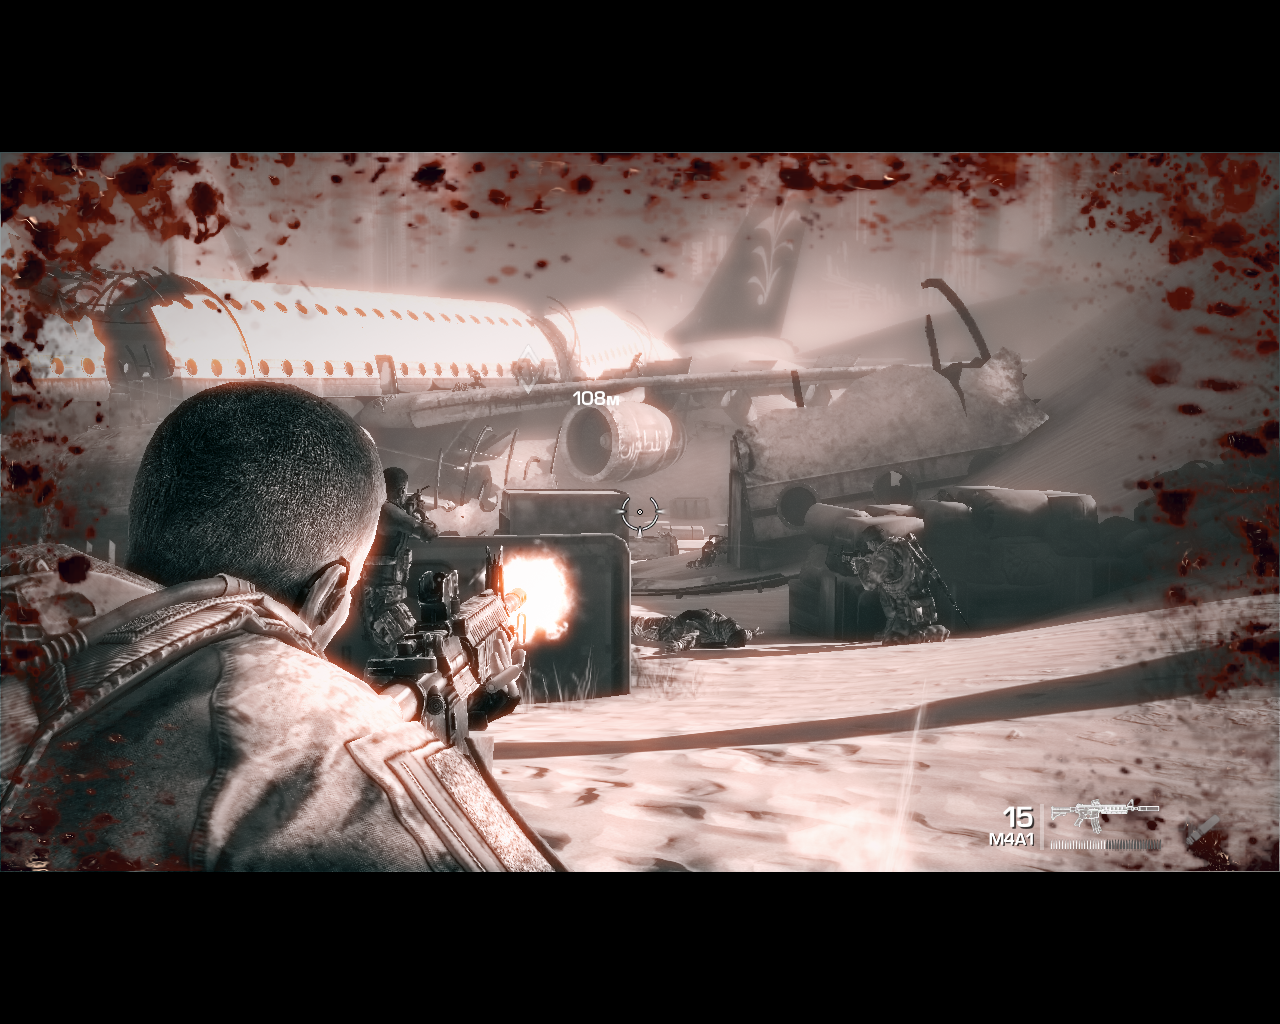 Spec Ops: The Line Windows Near-death condition